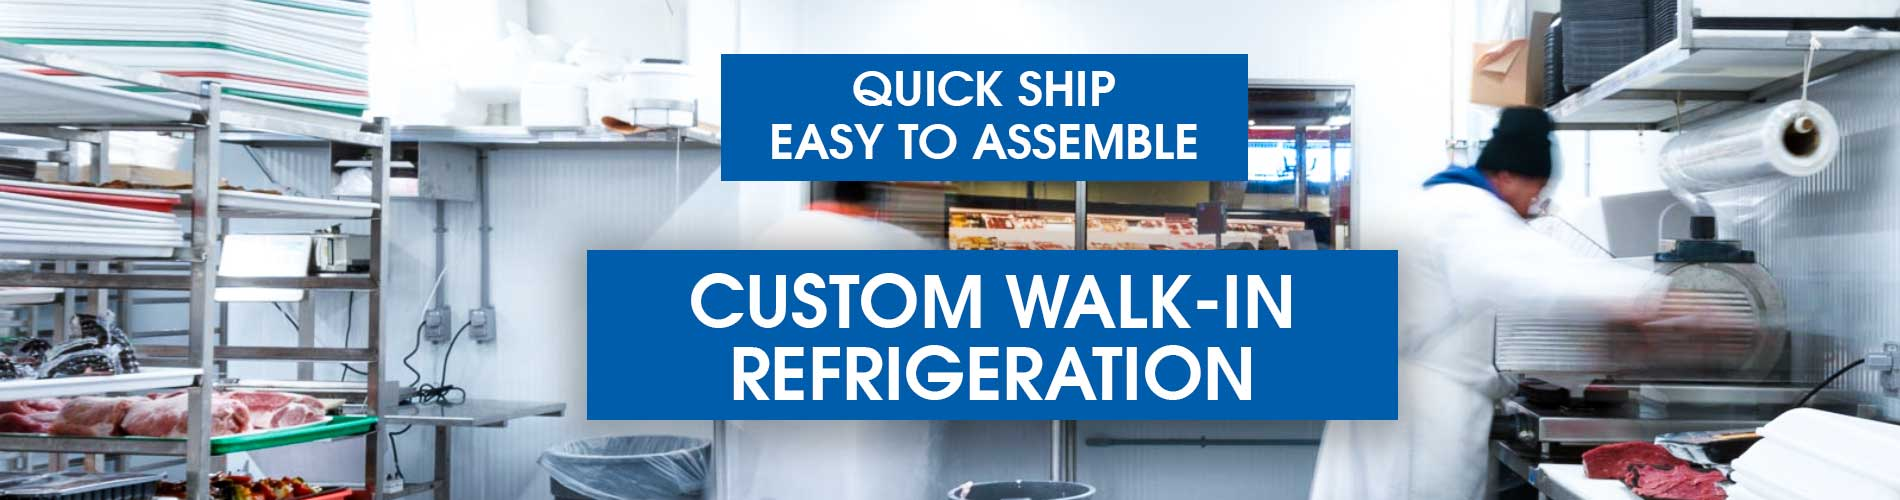 Custom Walk In Refrigeration - Refrigerators & Freezers